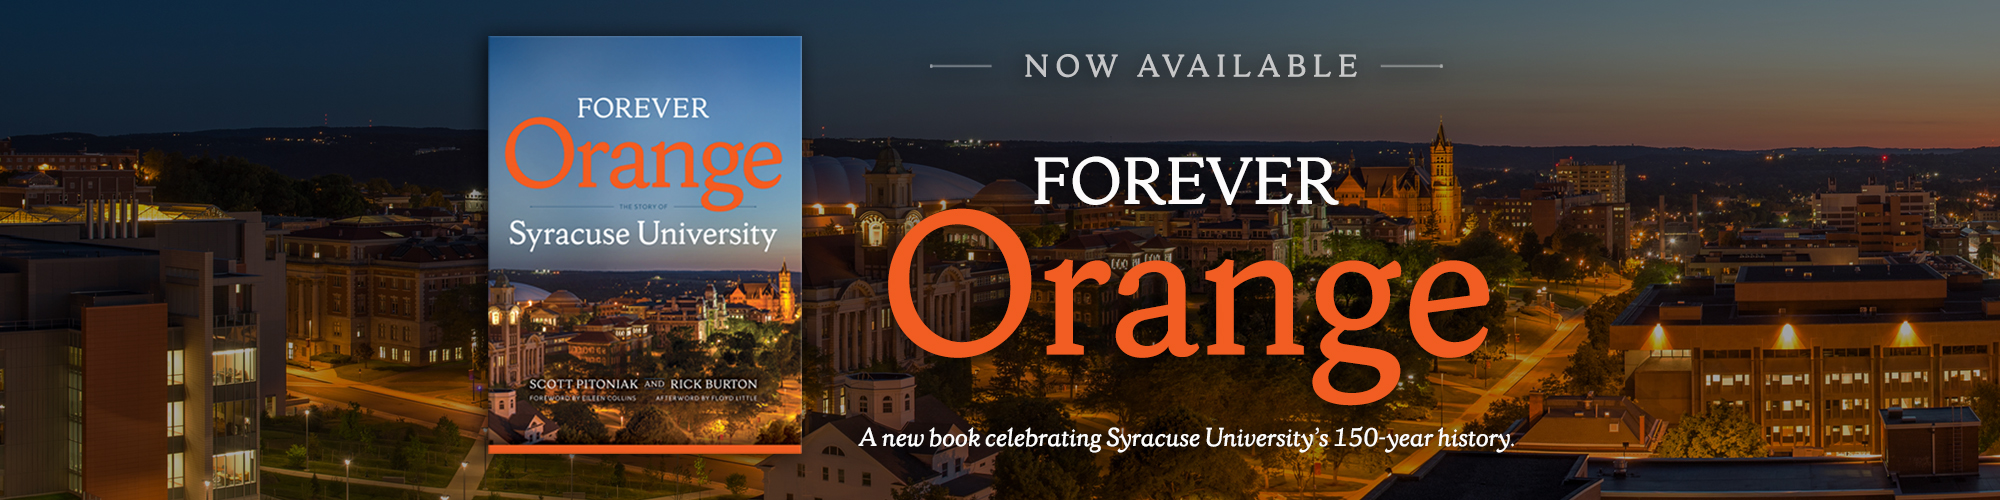 Alumni save 40% on Forever Orange now through June 30, 2020 with discount code 05SUP40